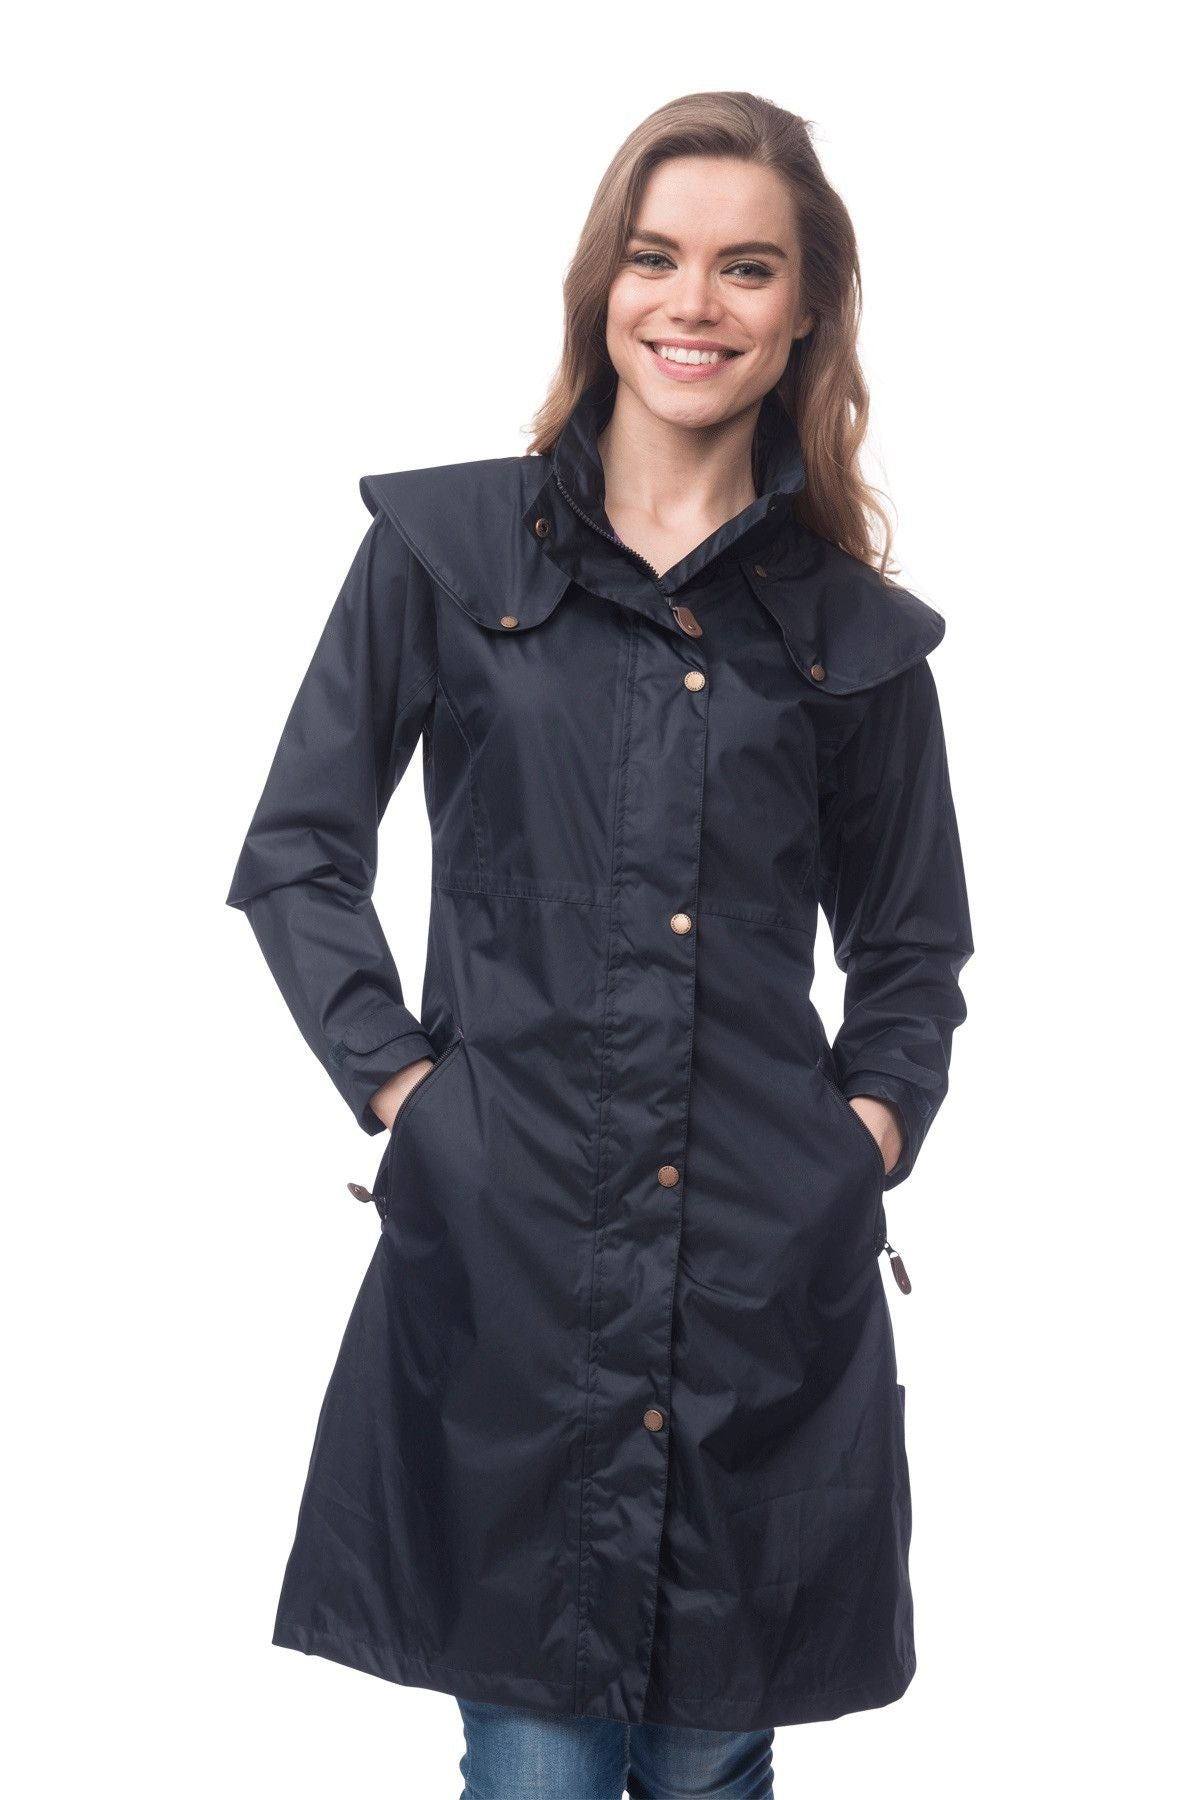 07ab48f2edd ... Target Dry Aintree Ladies 3 4 Length Waterproof Coat ...